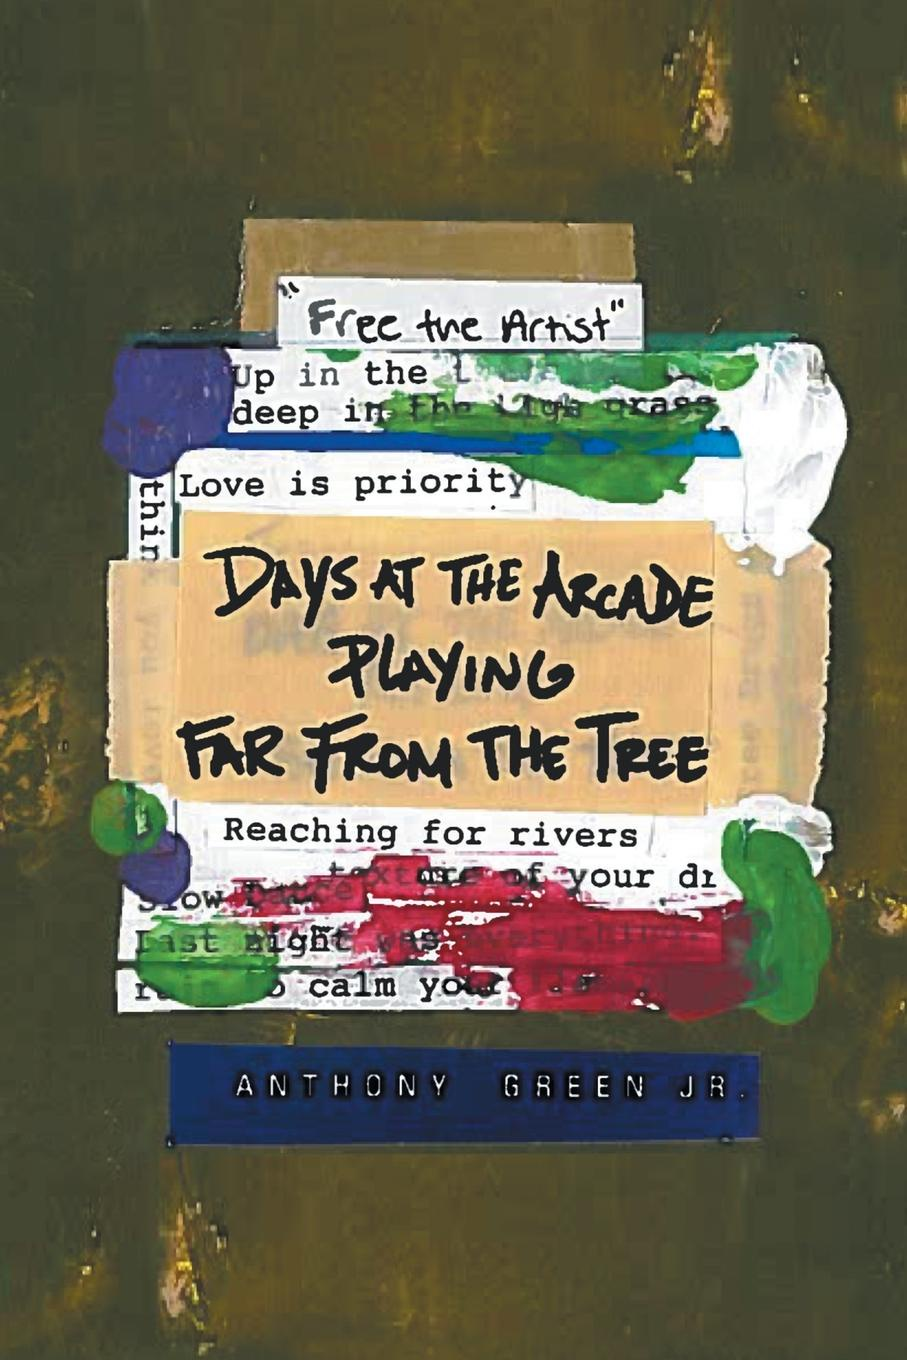 Anthony Green Jr. Days at the Arcade playing far from Tree